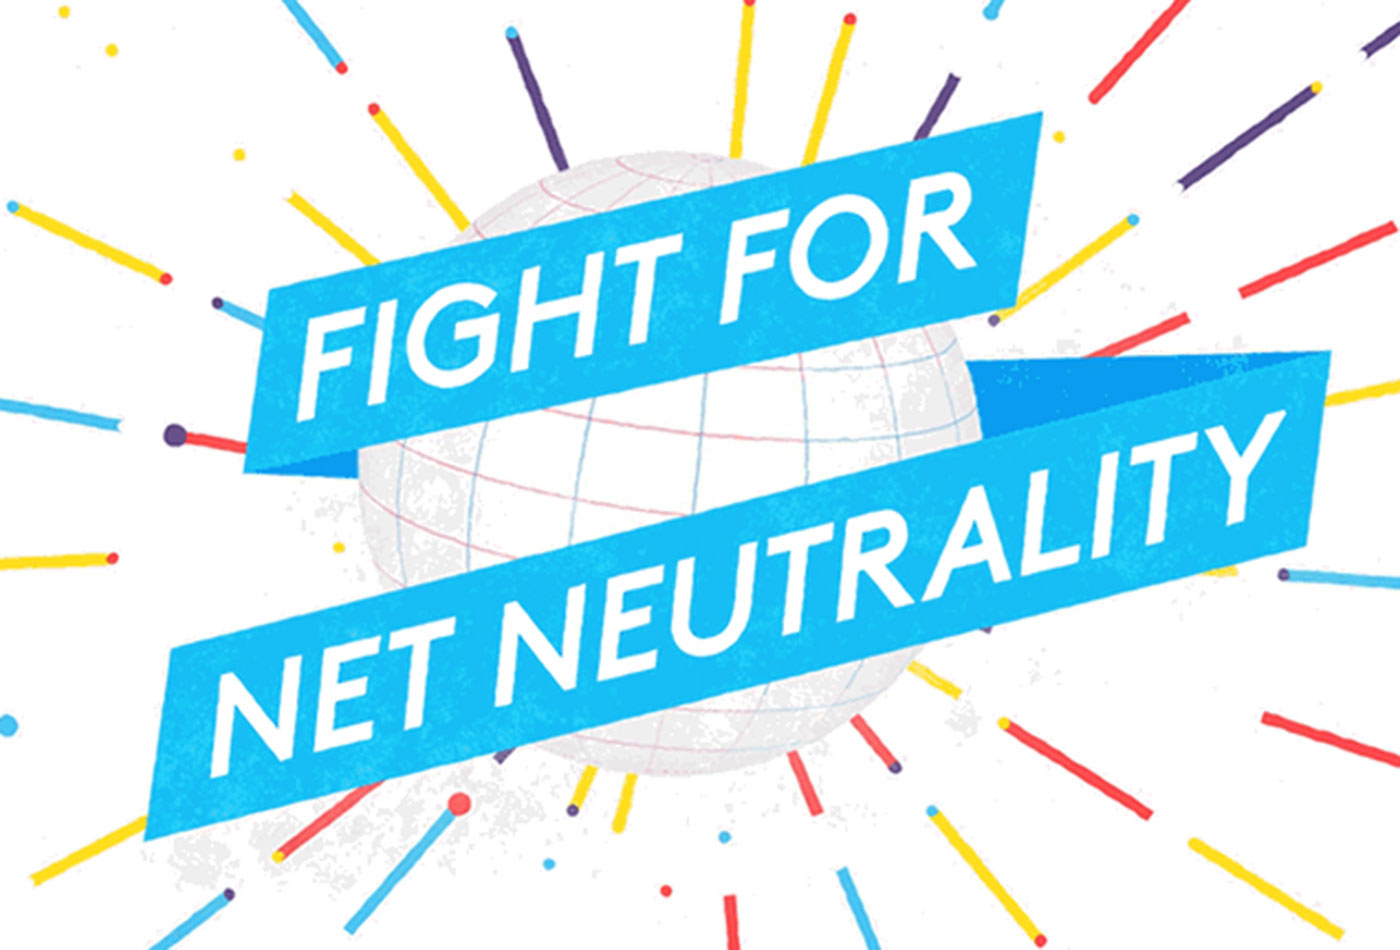 Join the fight for net neutrality.